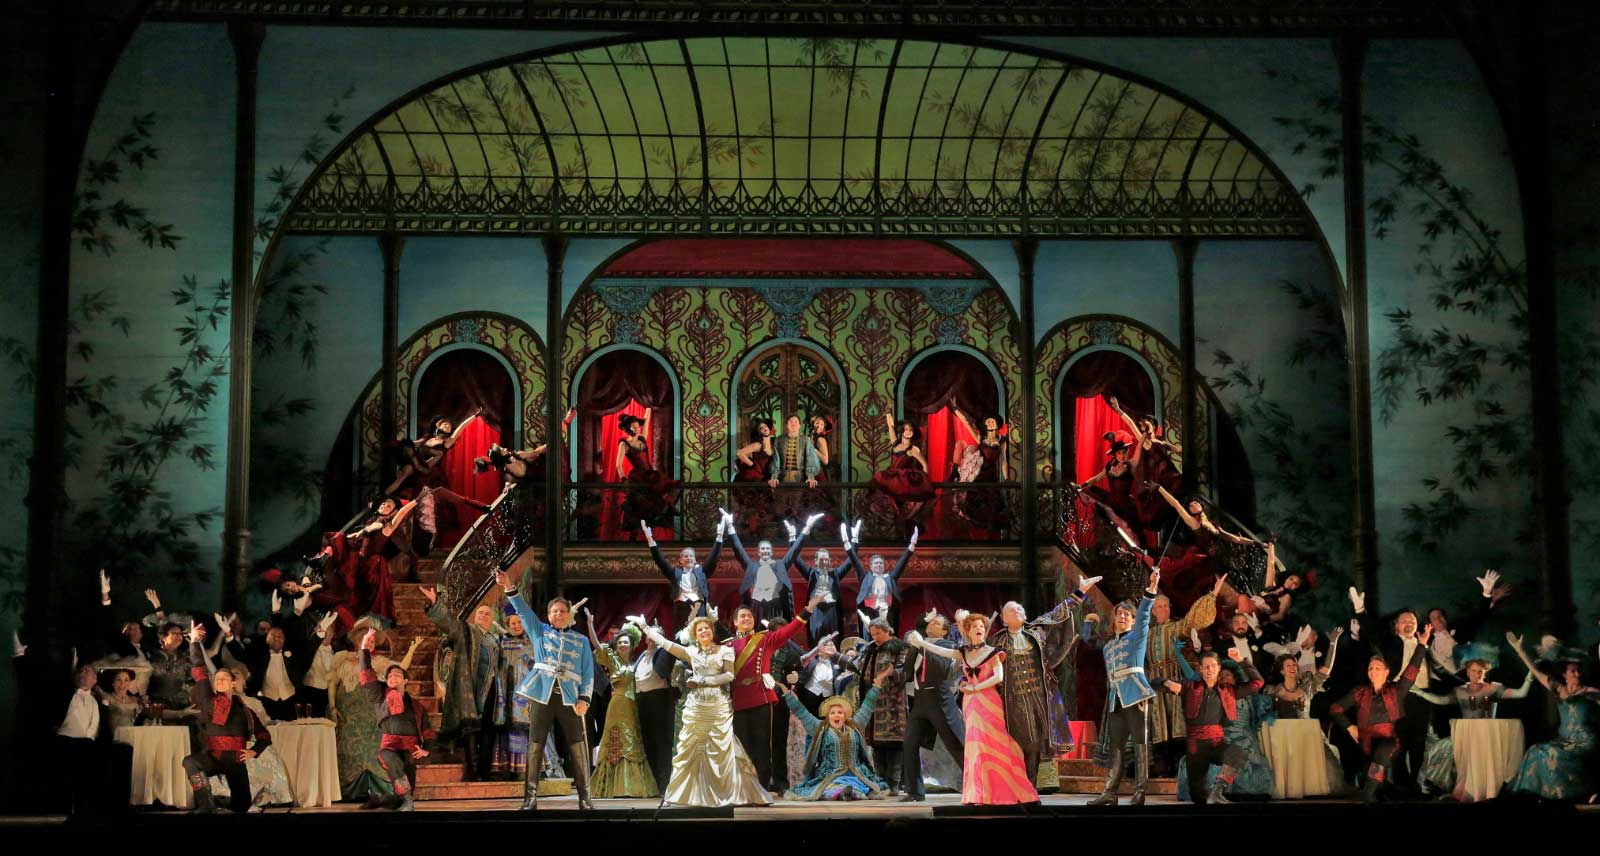 The Merry Widow cast pose for the grand finale. They are dressed in gorgeous gowns and Parisian suits.